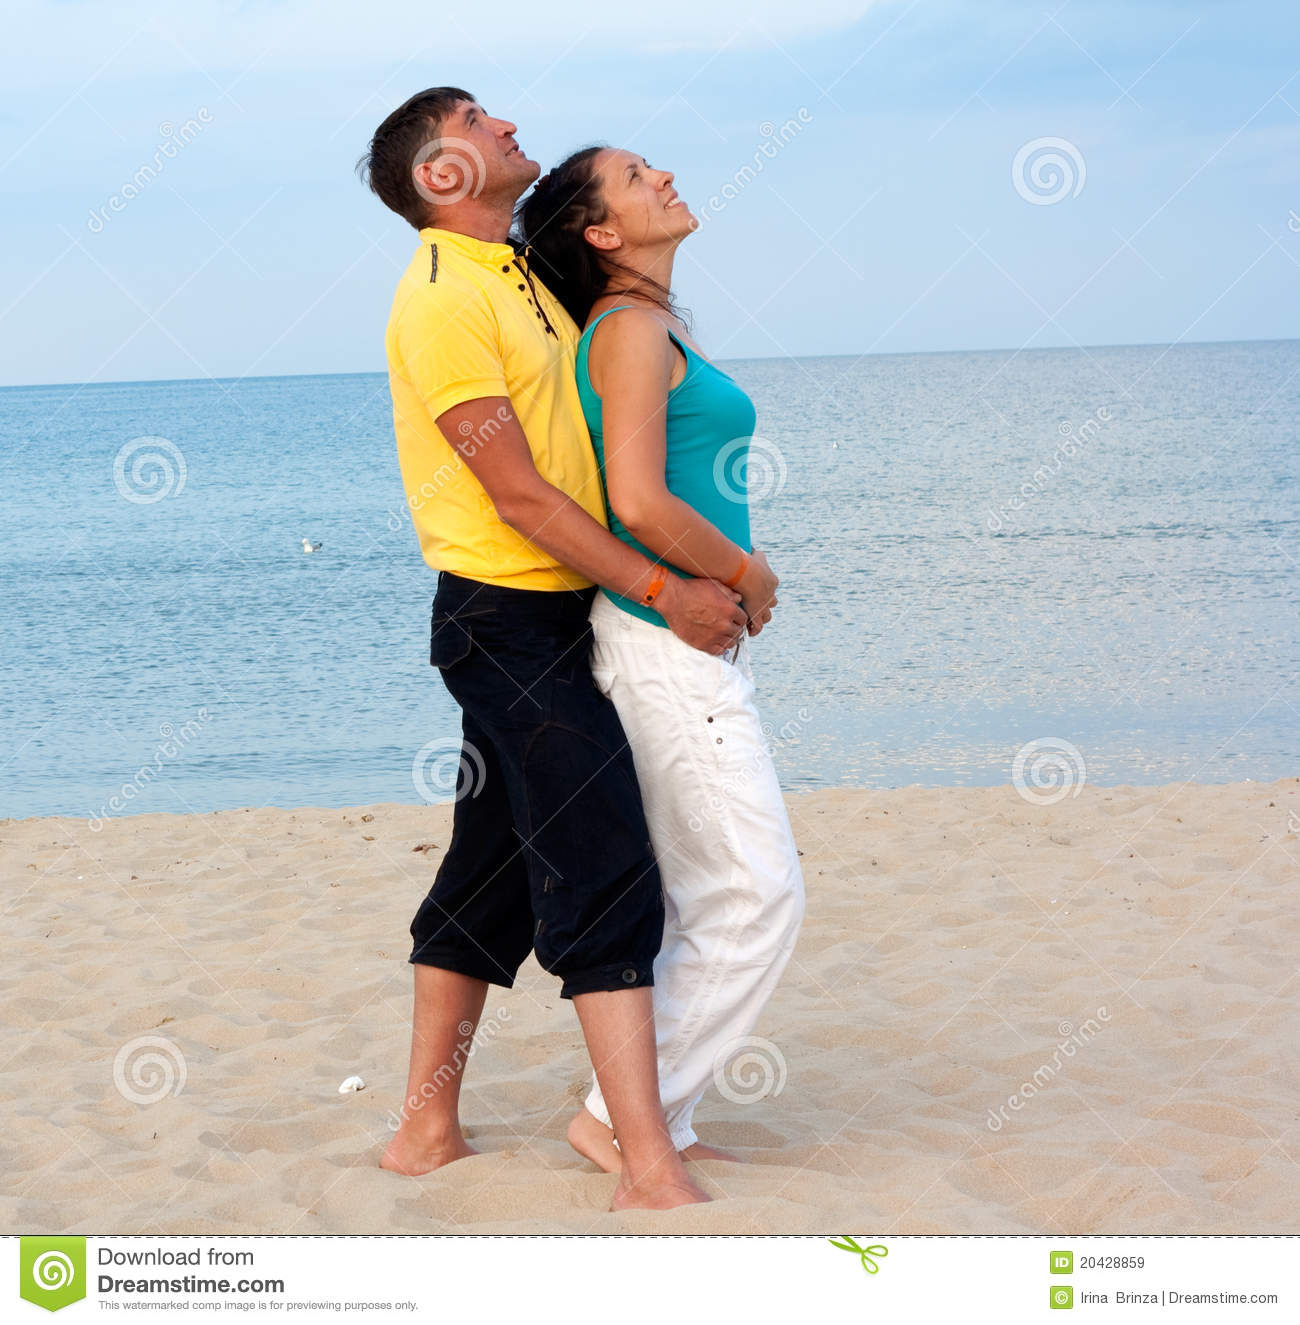 Couple At The Beach Stock Image Image Of Caucasian: Loving Couple Having Fun On The Beach Stock Image